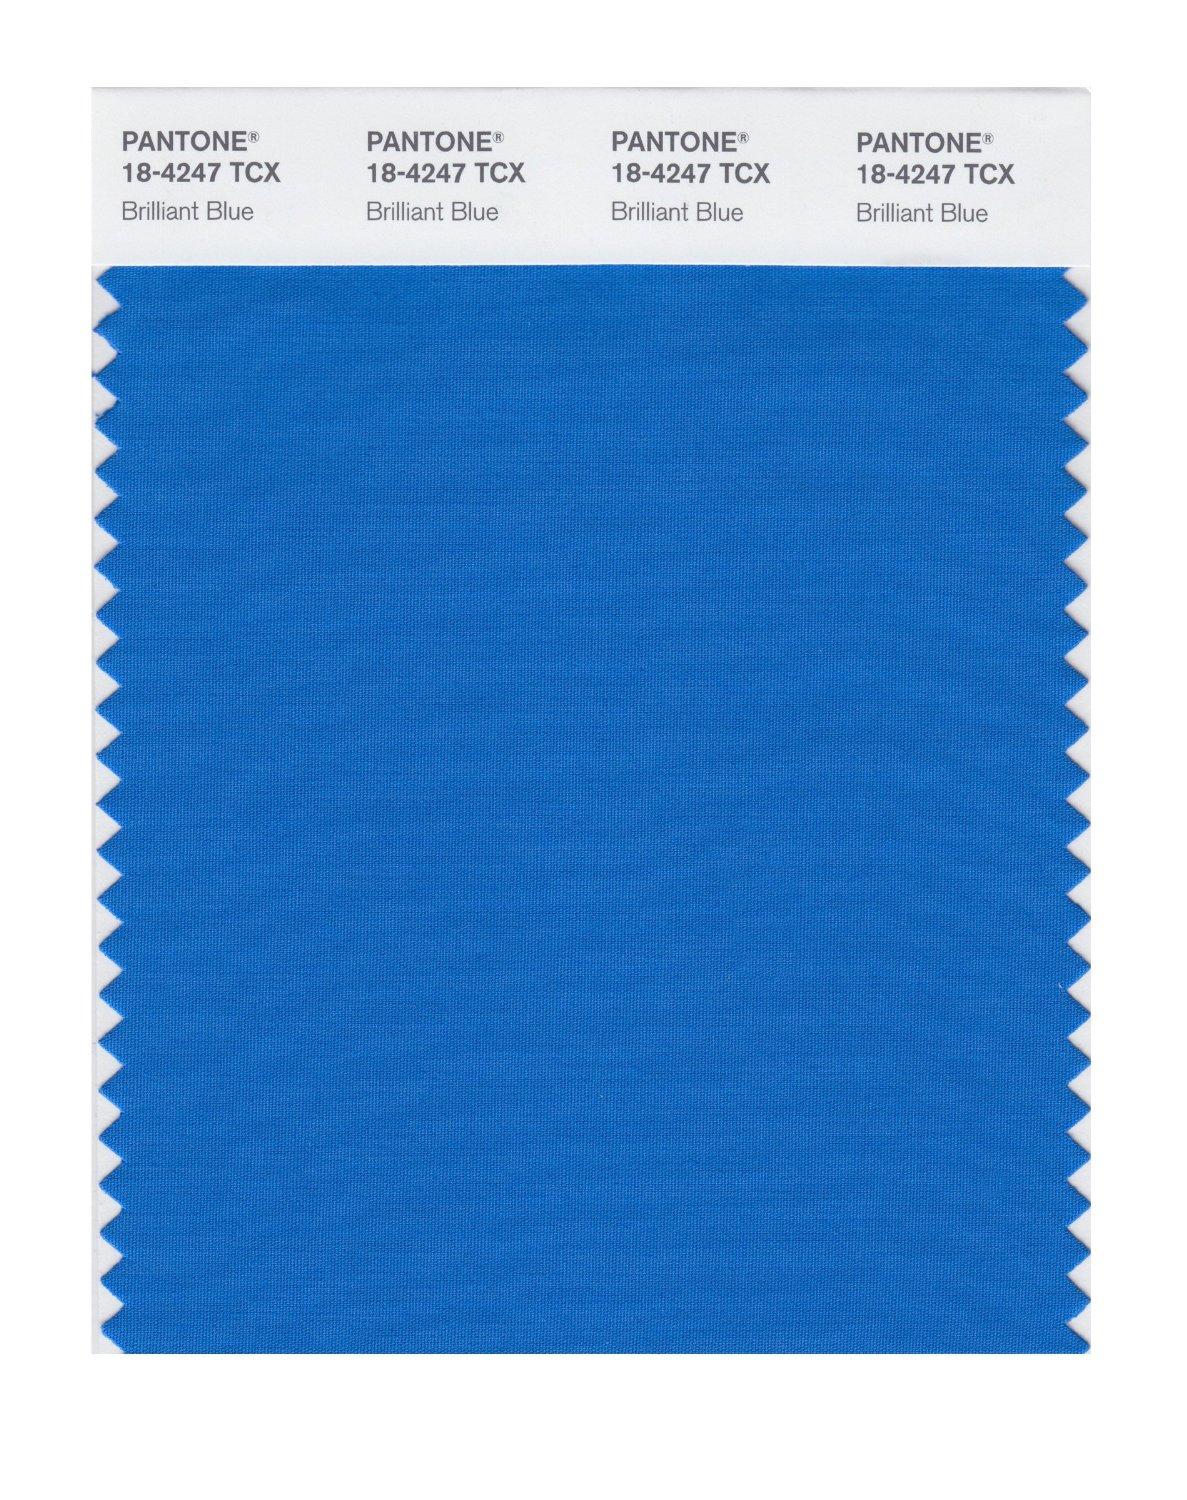 Pantone Smart Swatch 18-4247 Brilliant Blue